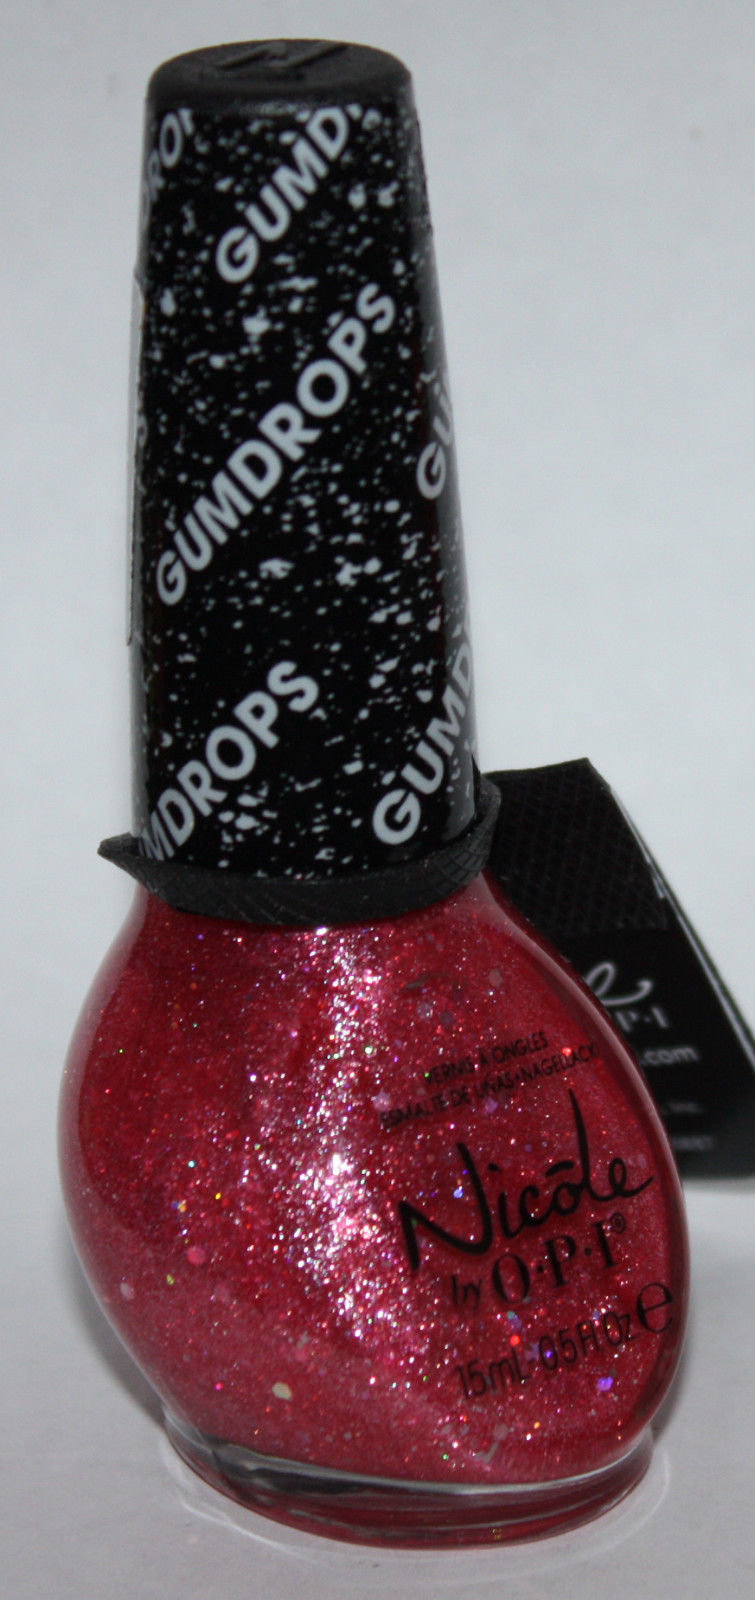 CANDY IS DANDY -Nicole By OPI GUMDROPS Textured Matte Finish Nail Polish .5 oz 14773